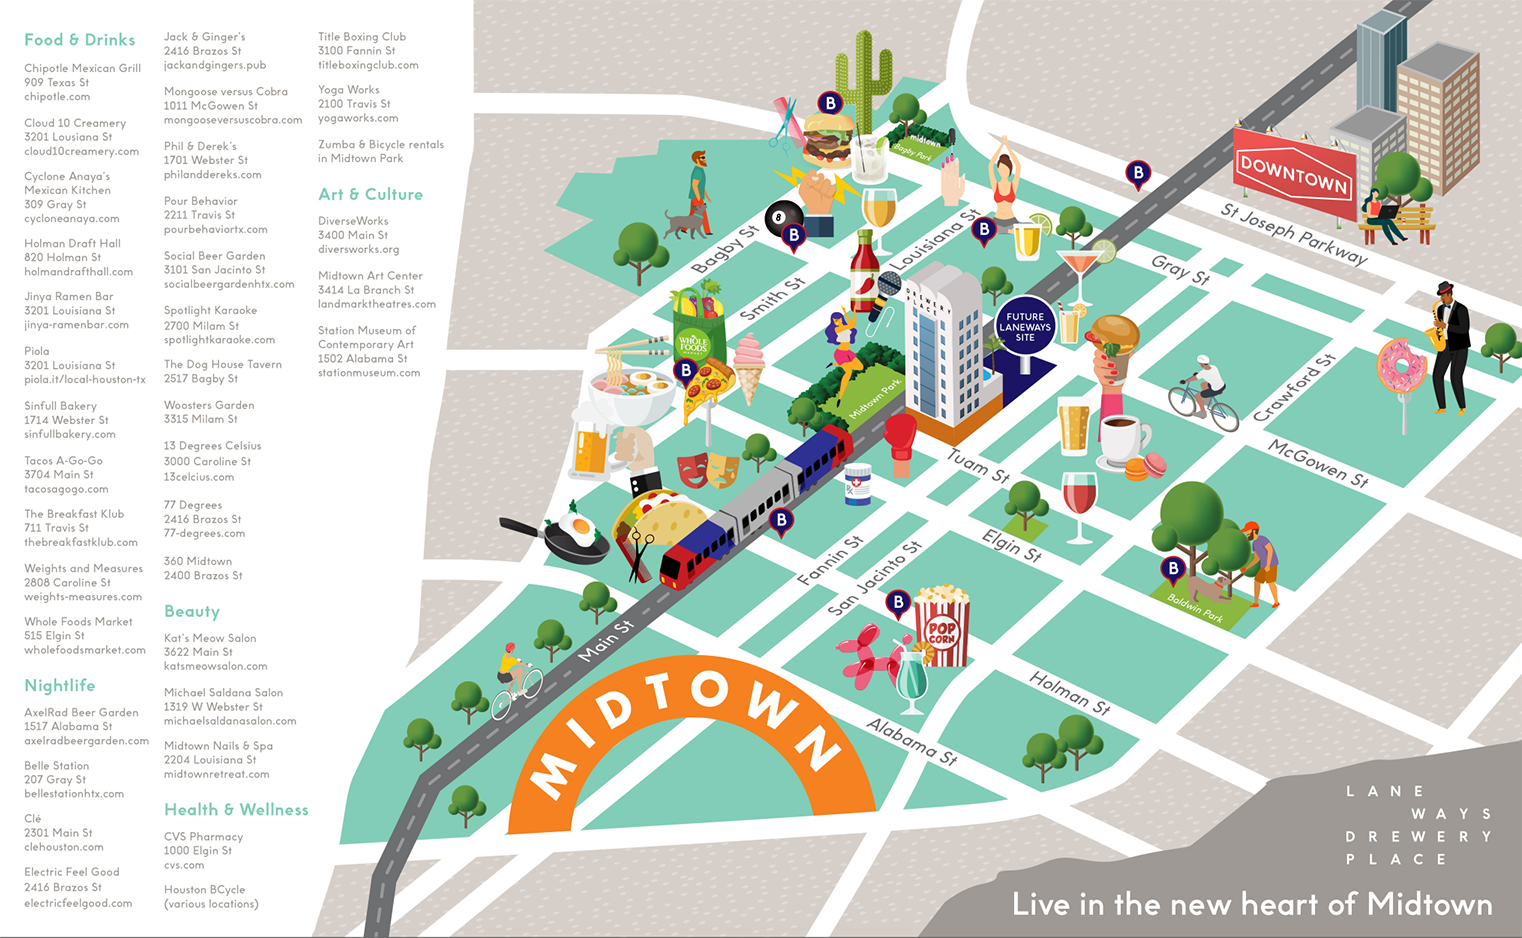 Graphic map of Midtown featuring nearby places of interest